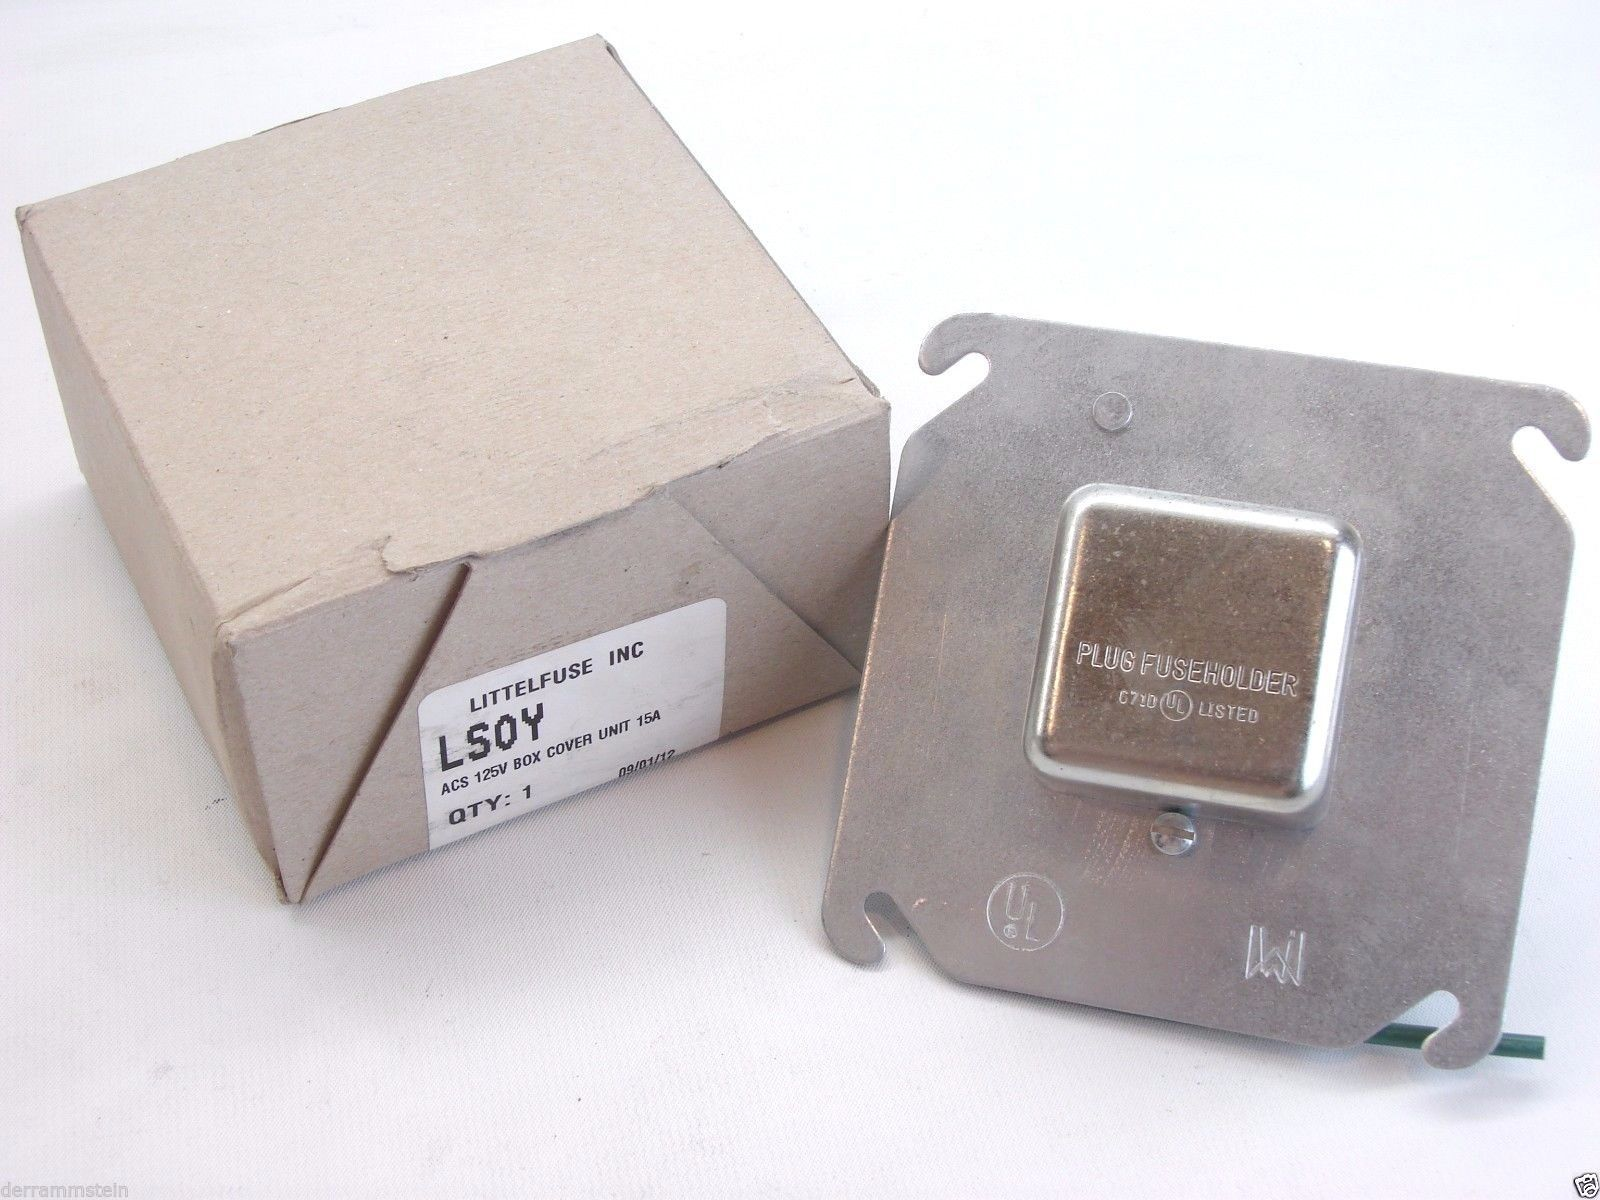 Littelfuse Lsoy Series 4x4 Box Cover Unit And Similar Items Single Fuse With Pole Holder New B216